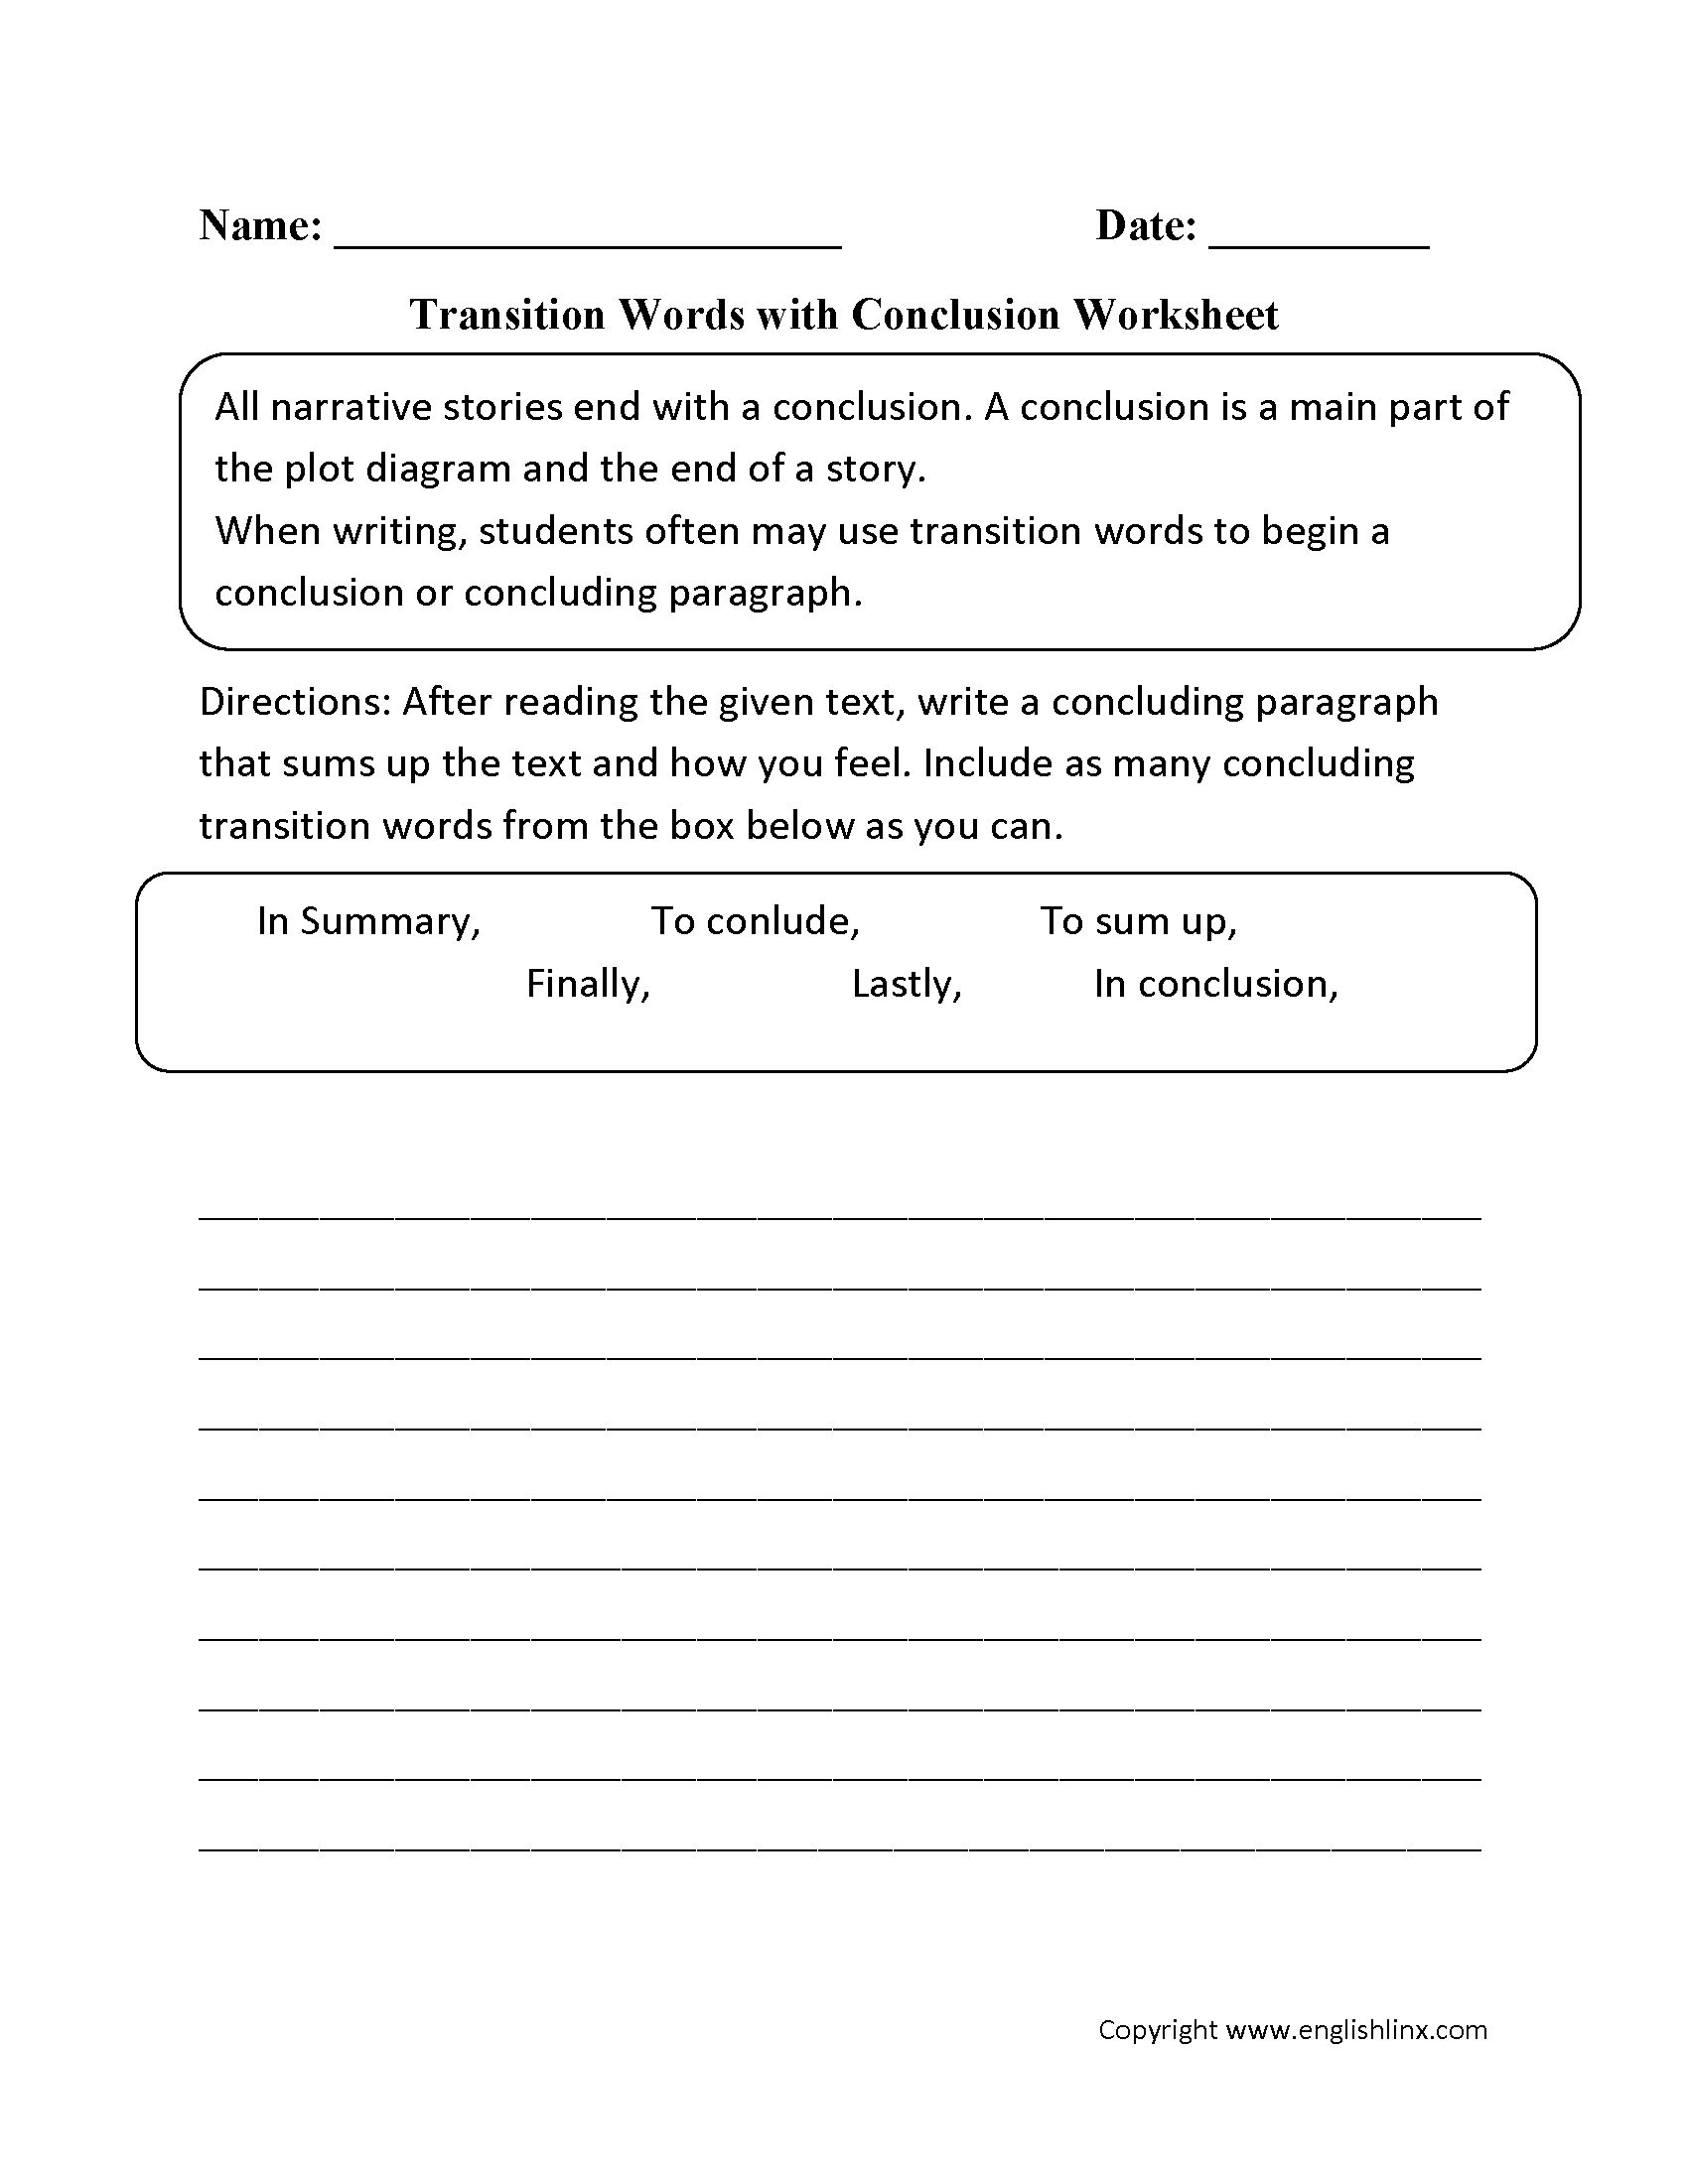 Transition Words Worksheet High School